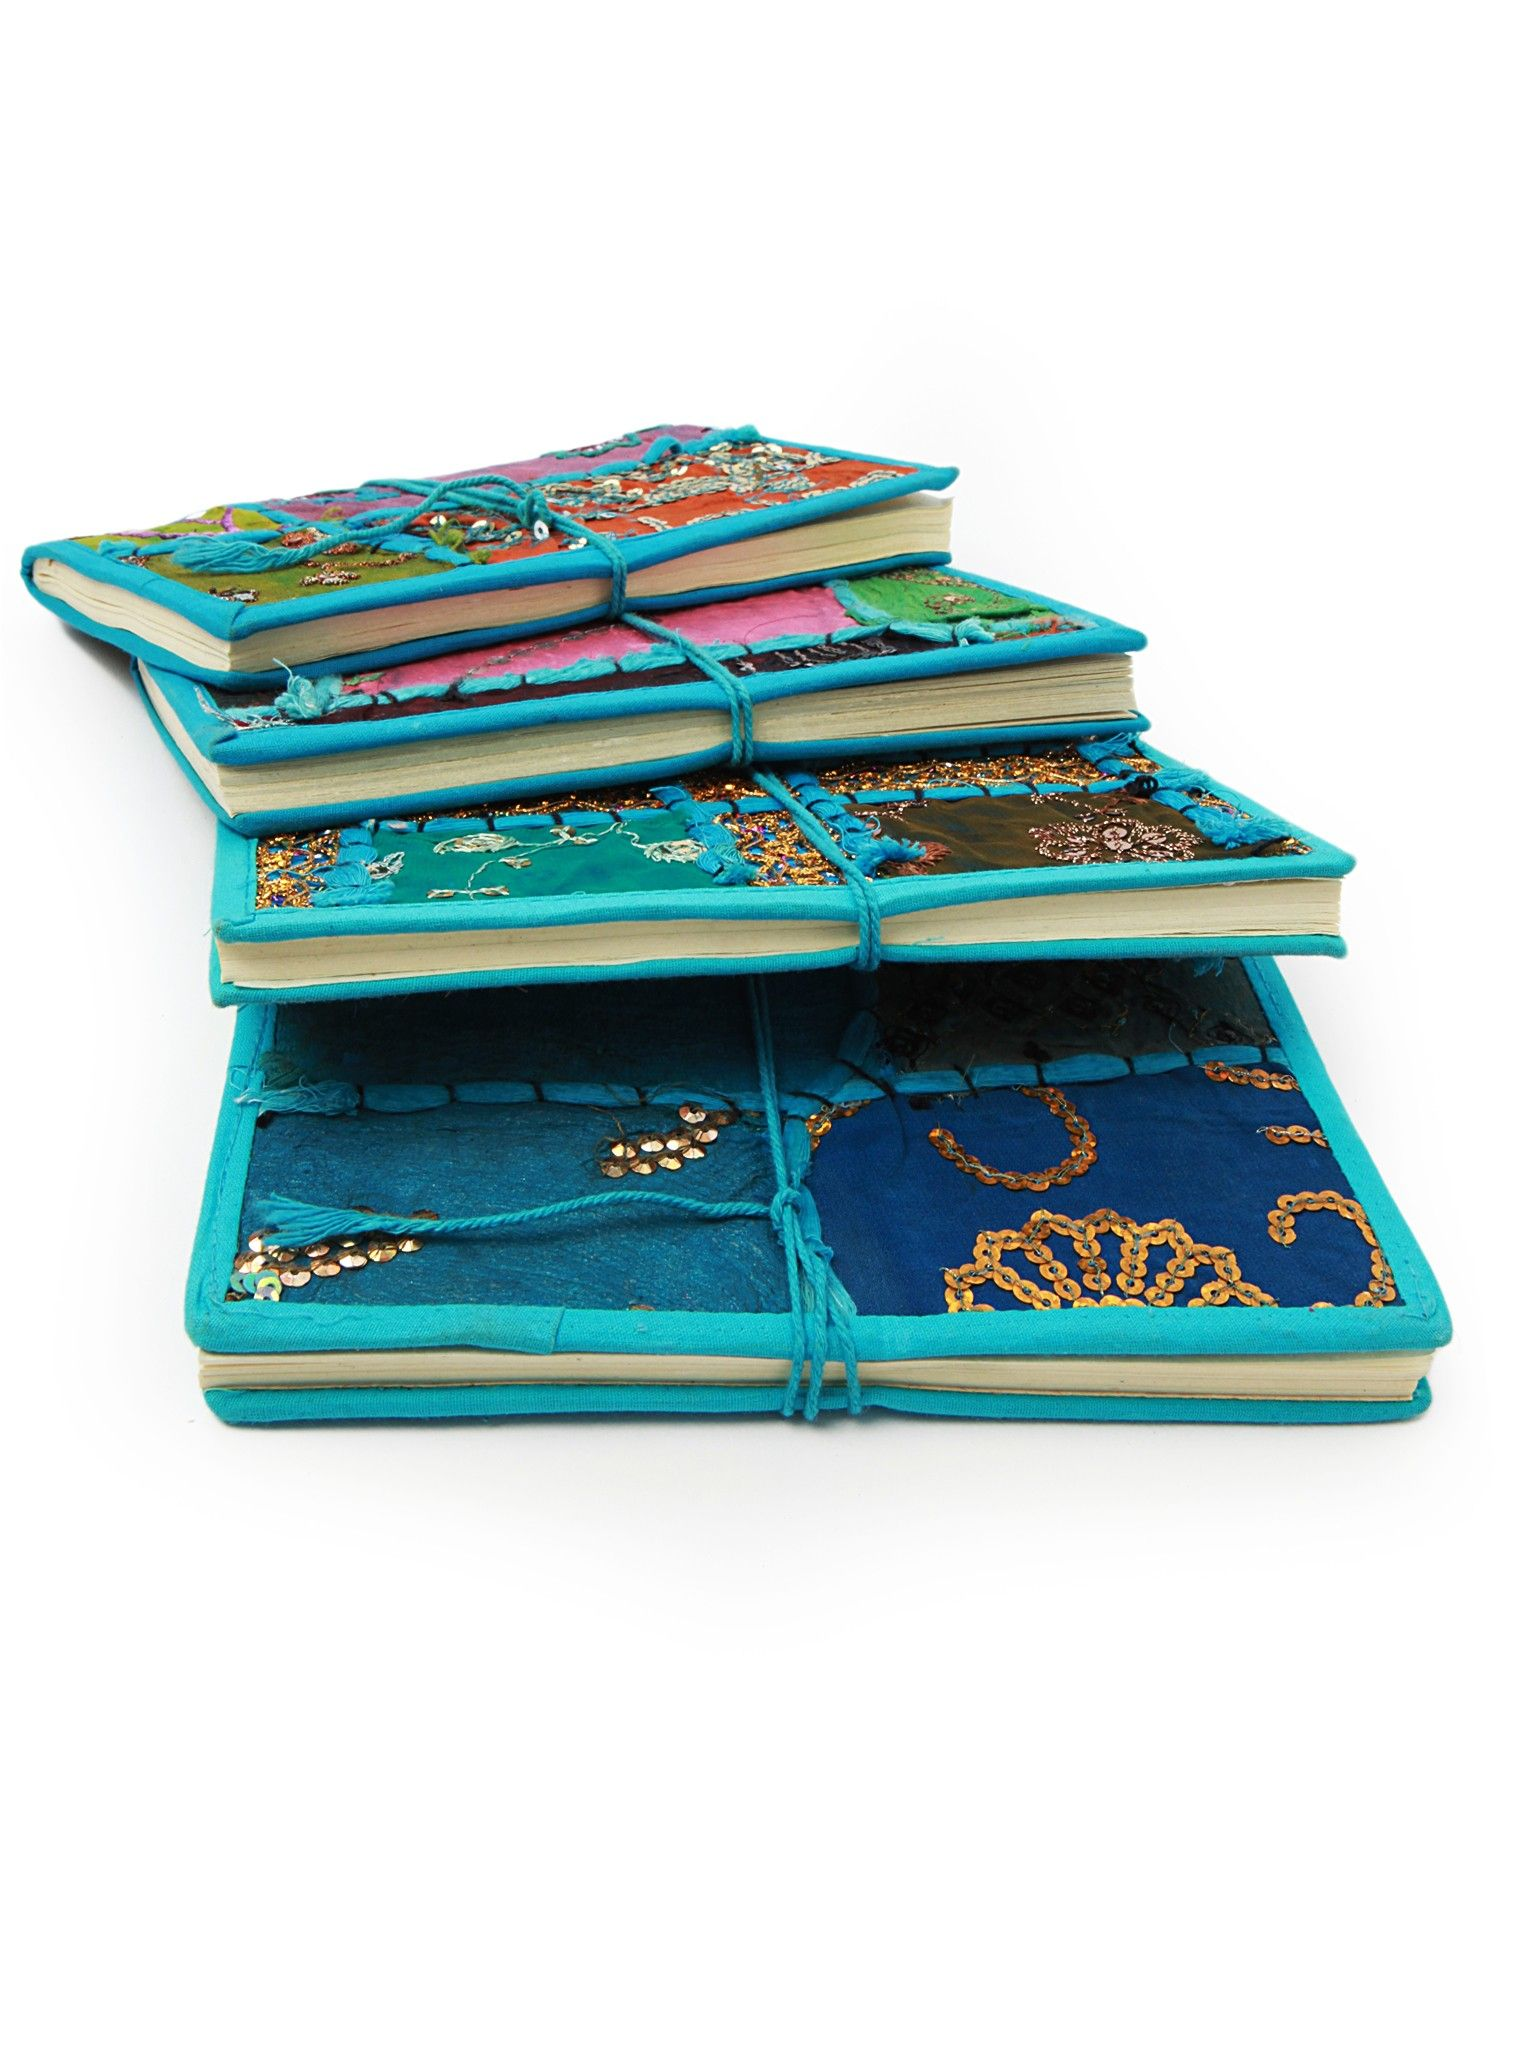 Embellished journal book journal books and embroidery designs